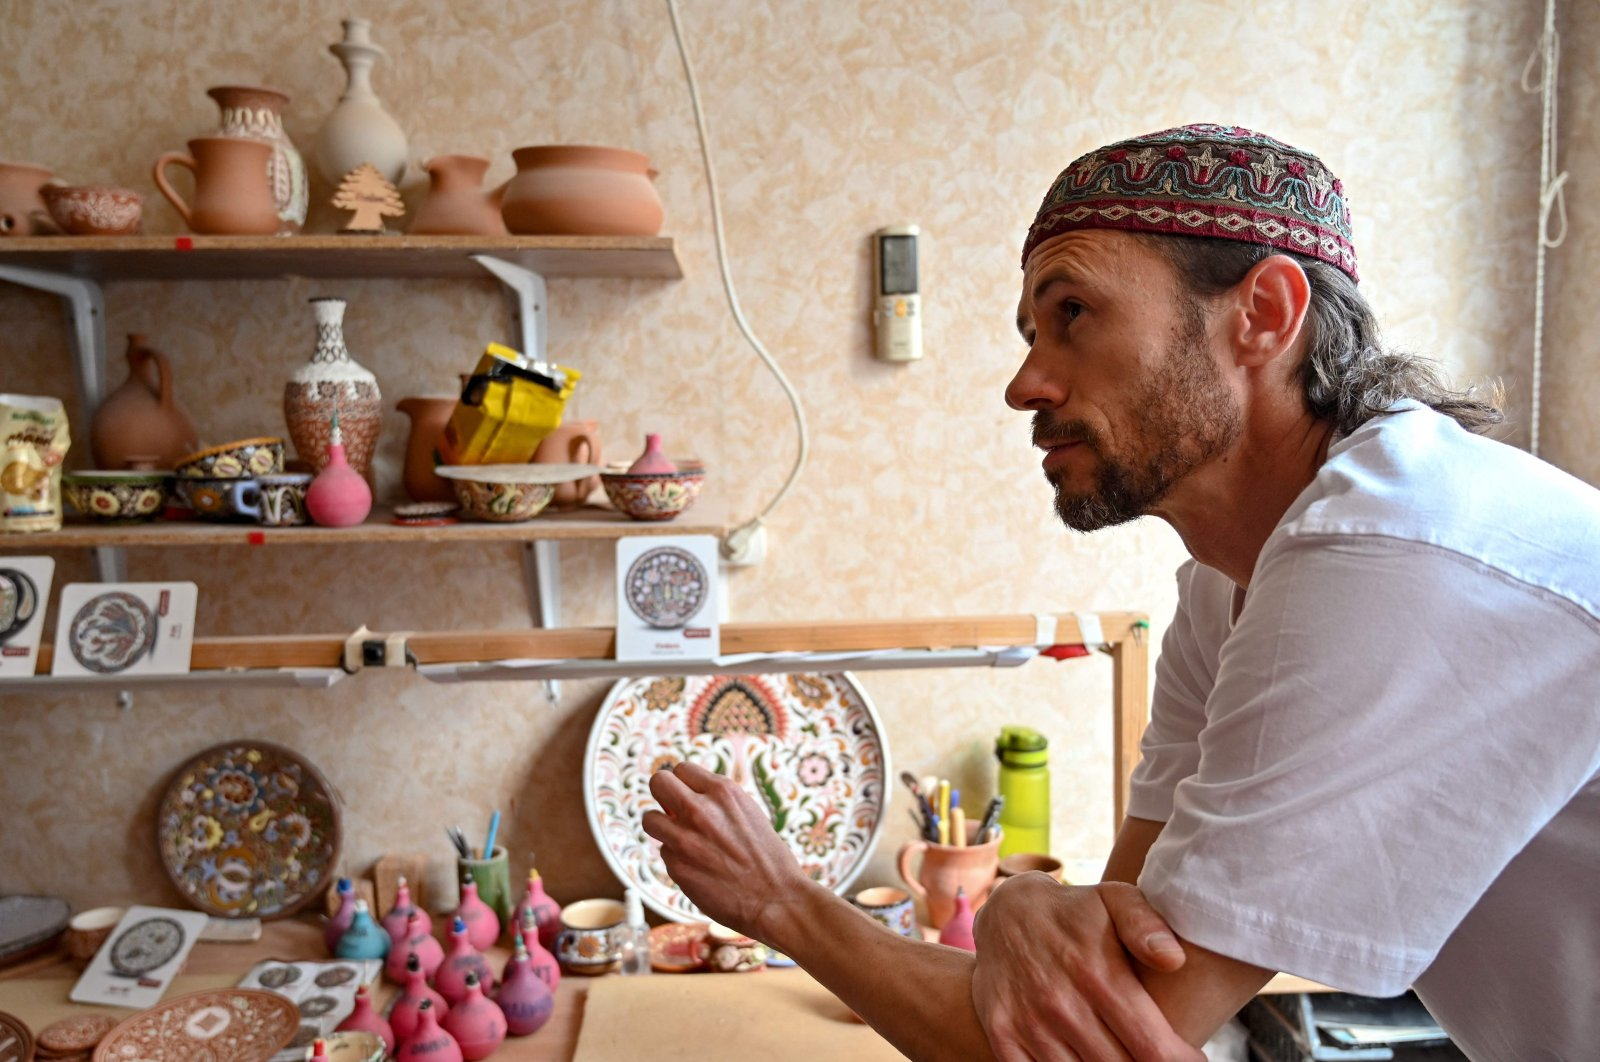 Rustem Skybin, 45, a ceramics artist, attends an interview with AFP at his workshop in Kyiv, Ukraine, Sept. 10, 2021. (AFP Photo)